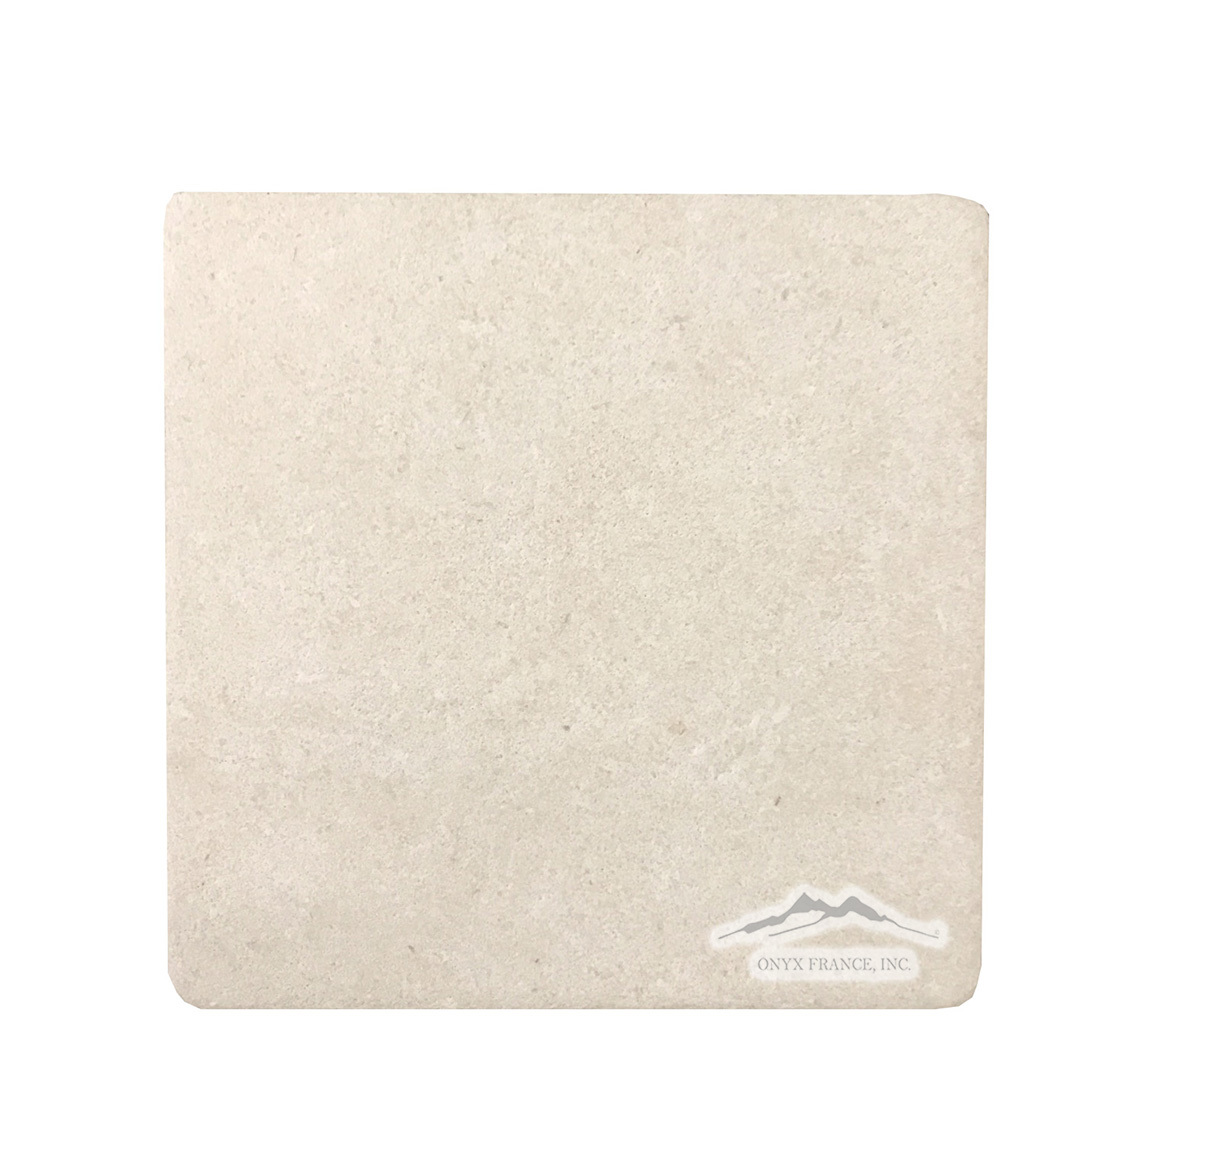 "Cream Marfil Marble 4"" x 4"" Tile Tumbled"